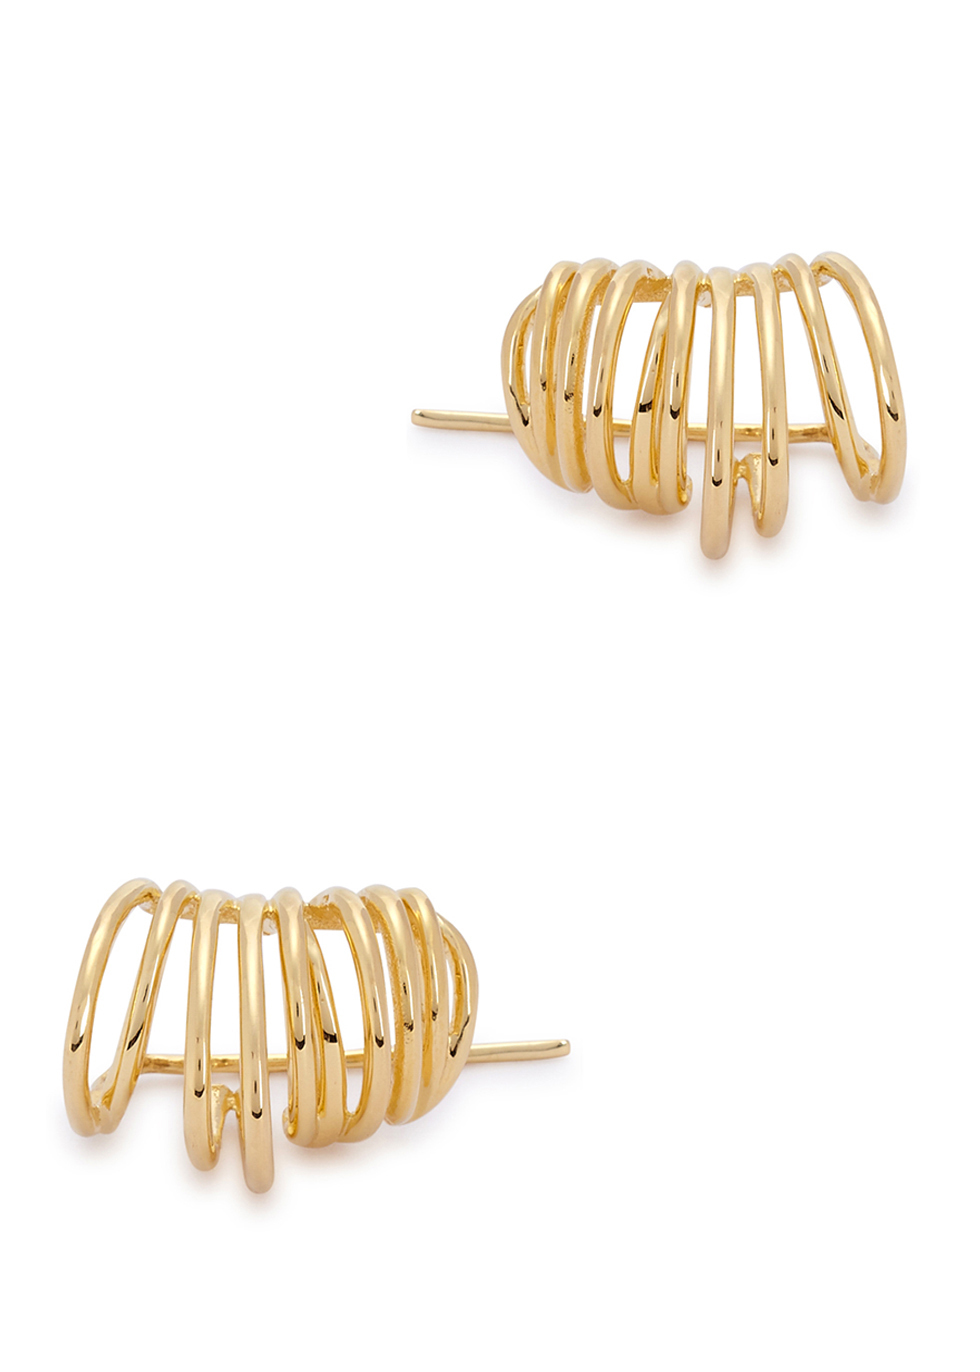 Roxy 23kt Gold Plated Earrings - predominant colour: gold; occasions: evening, occasion; style: hoop; length: mid; size: standard; material: chain/metal; fastening: pierced; finish: metallic; season: a/w 2016; wardrobe: event